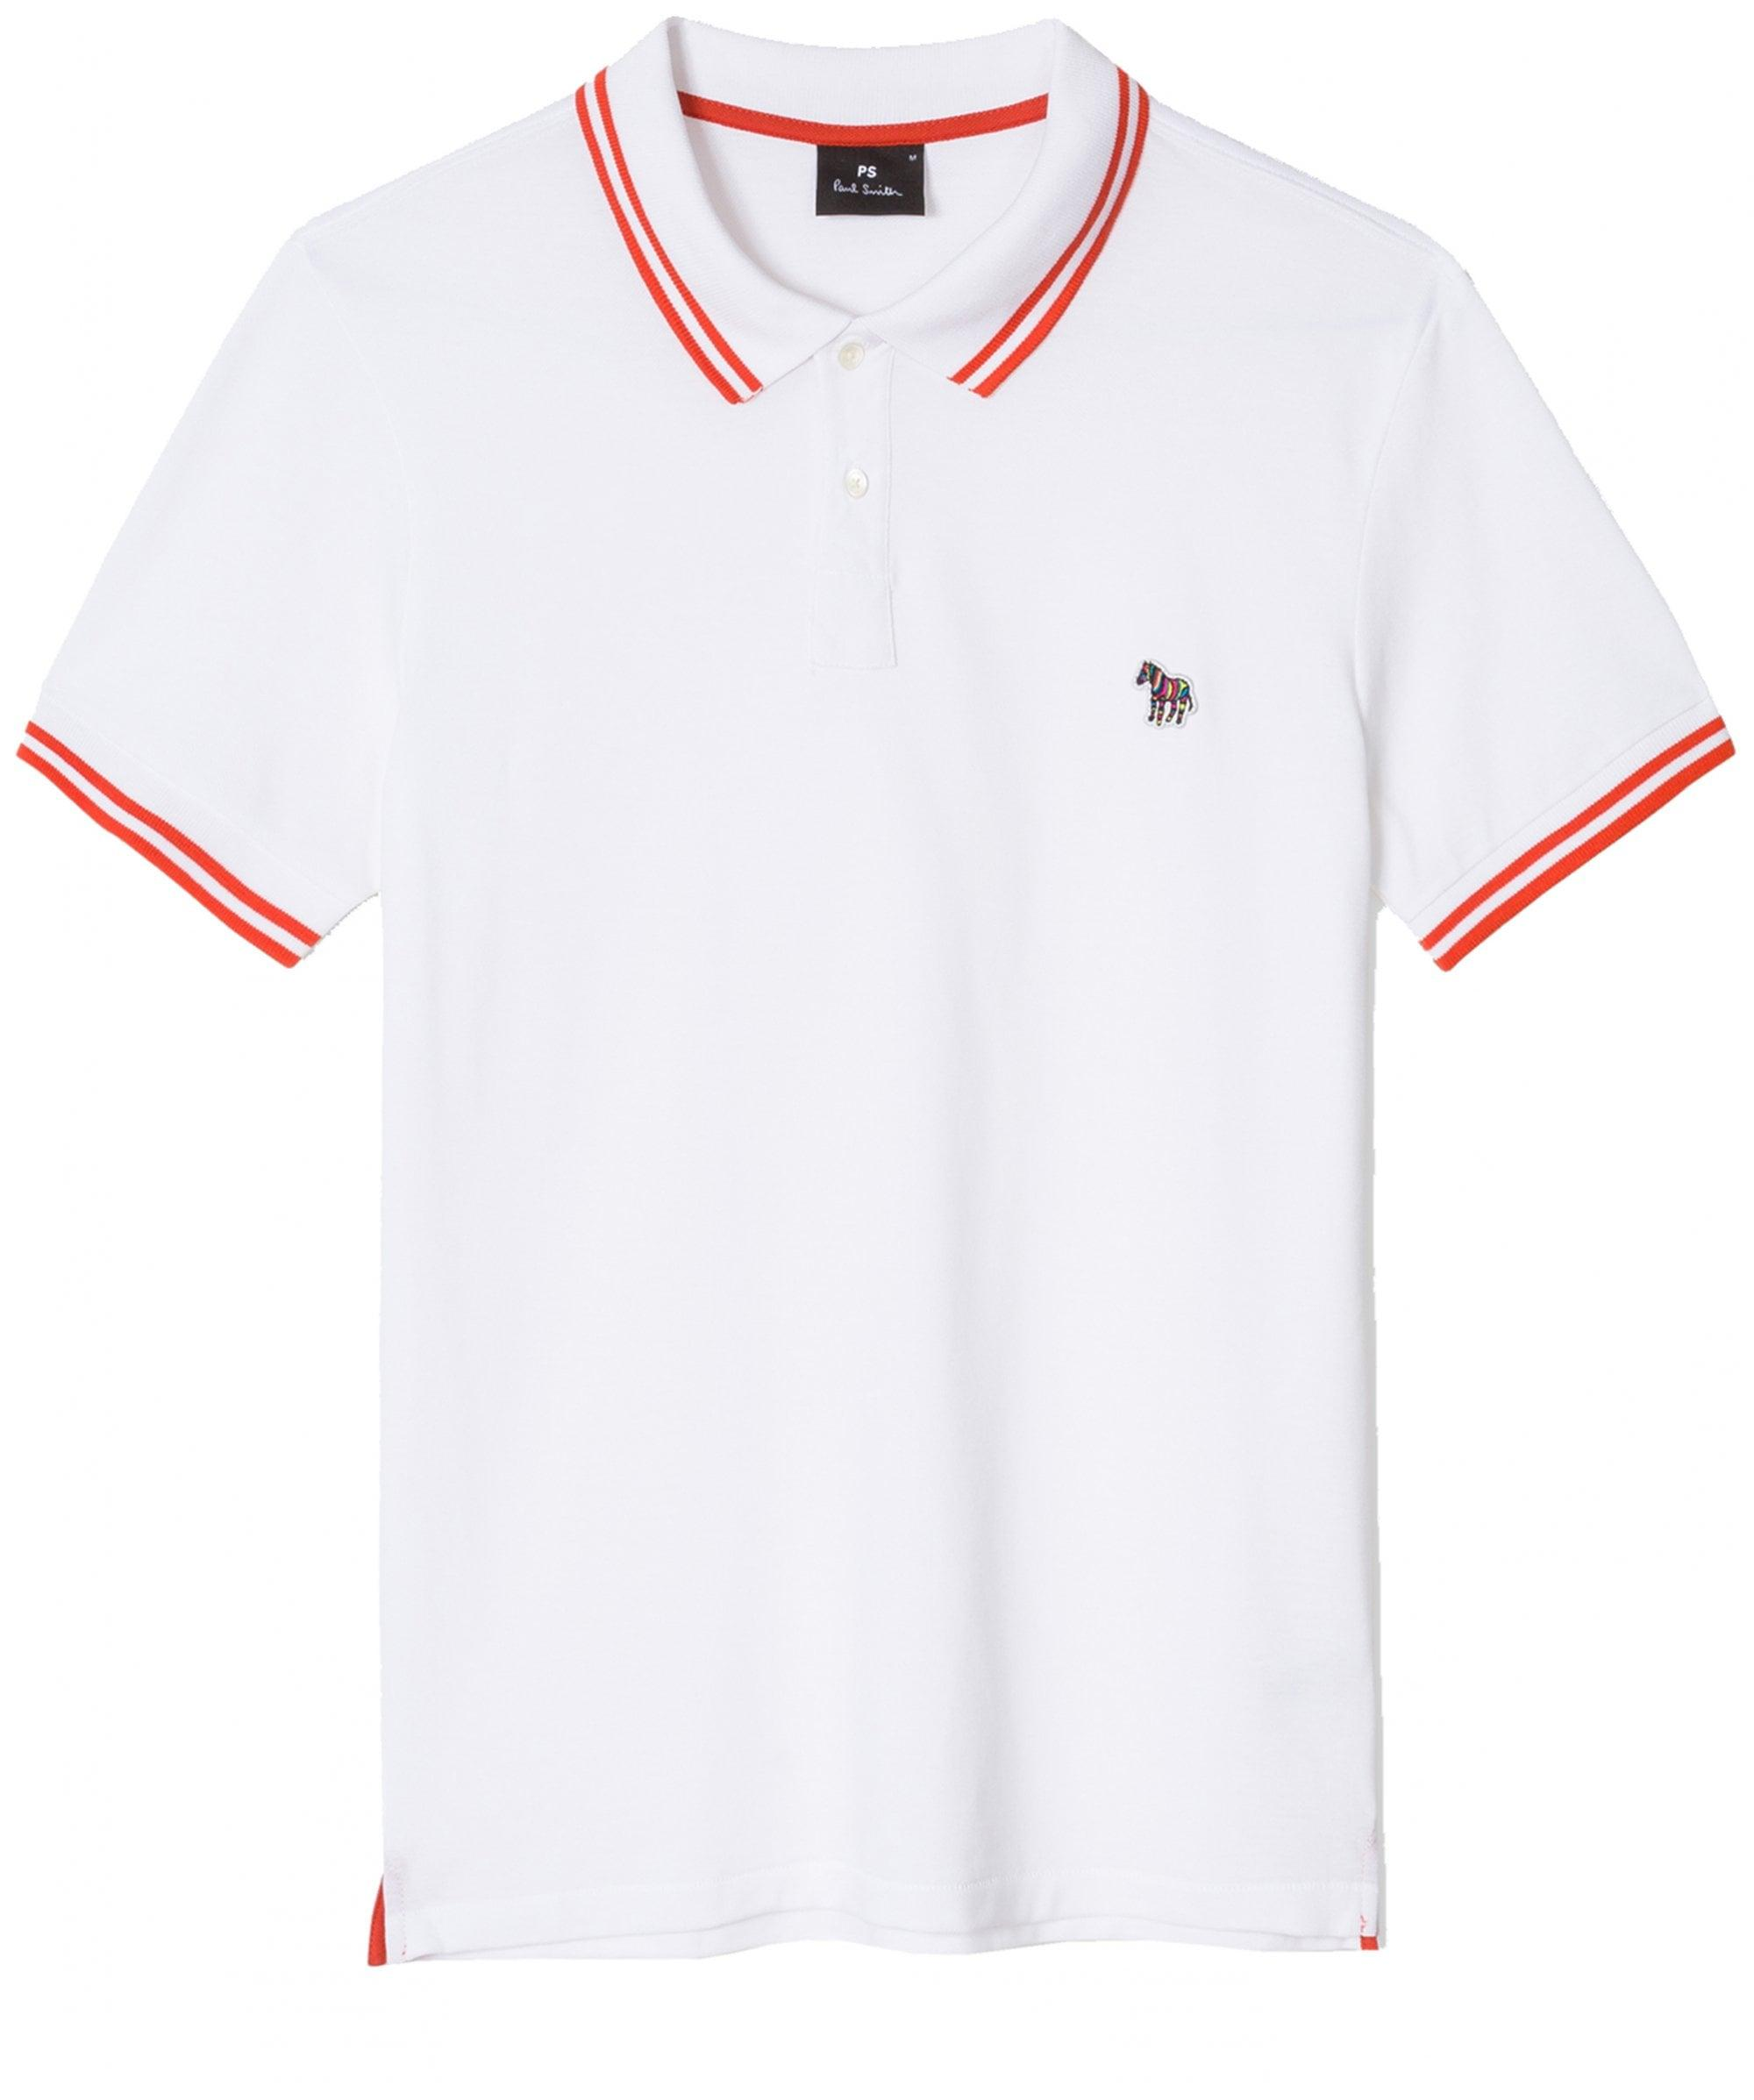 19743b377 PS by Paul Smith Regular Fit Twin Tipped Zebra Polo Shirt in White ...